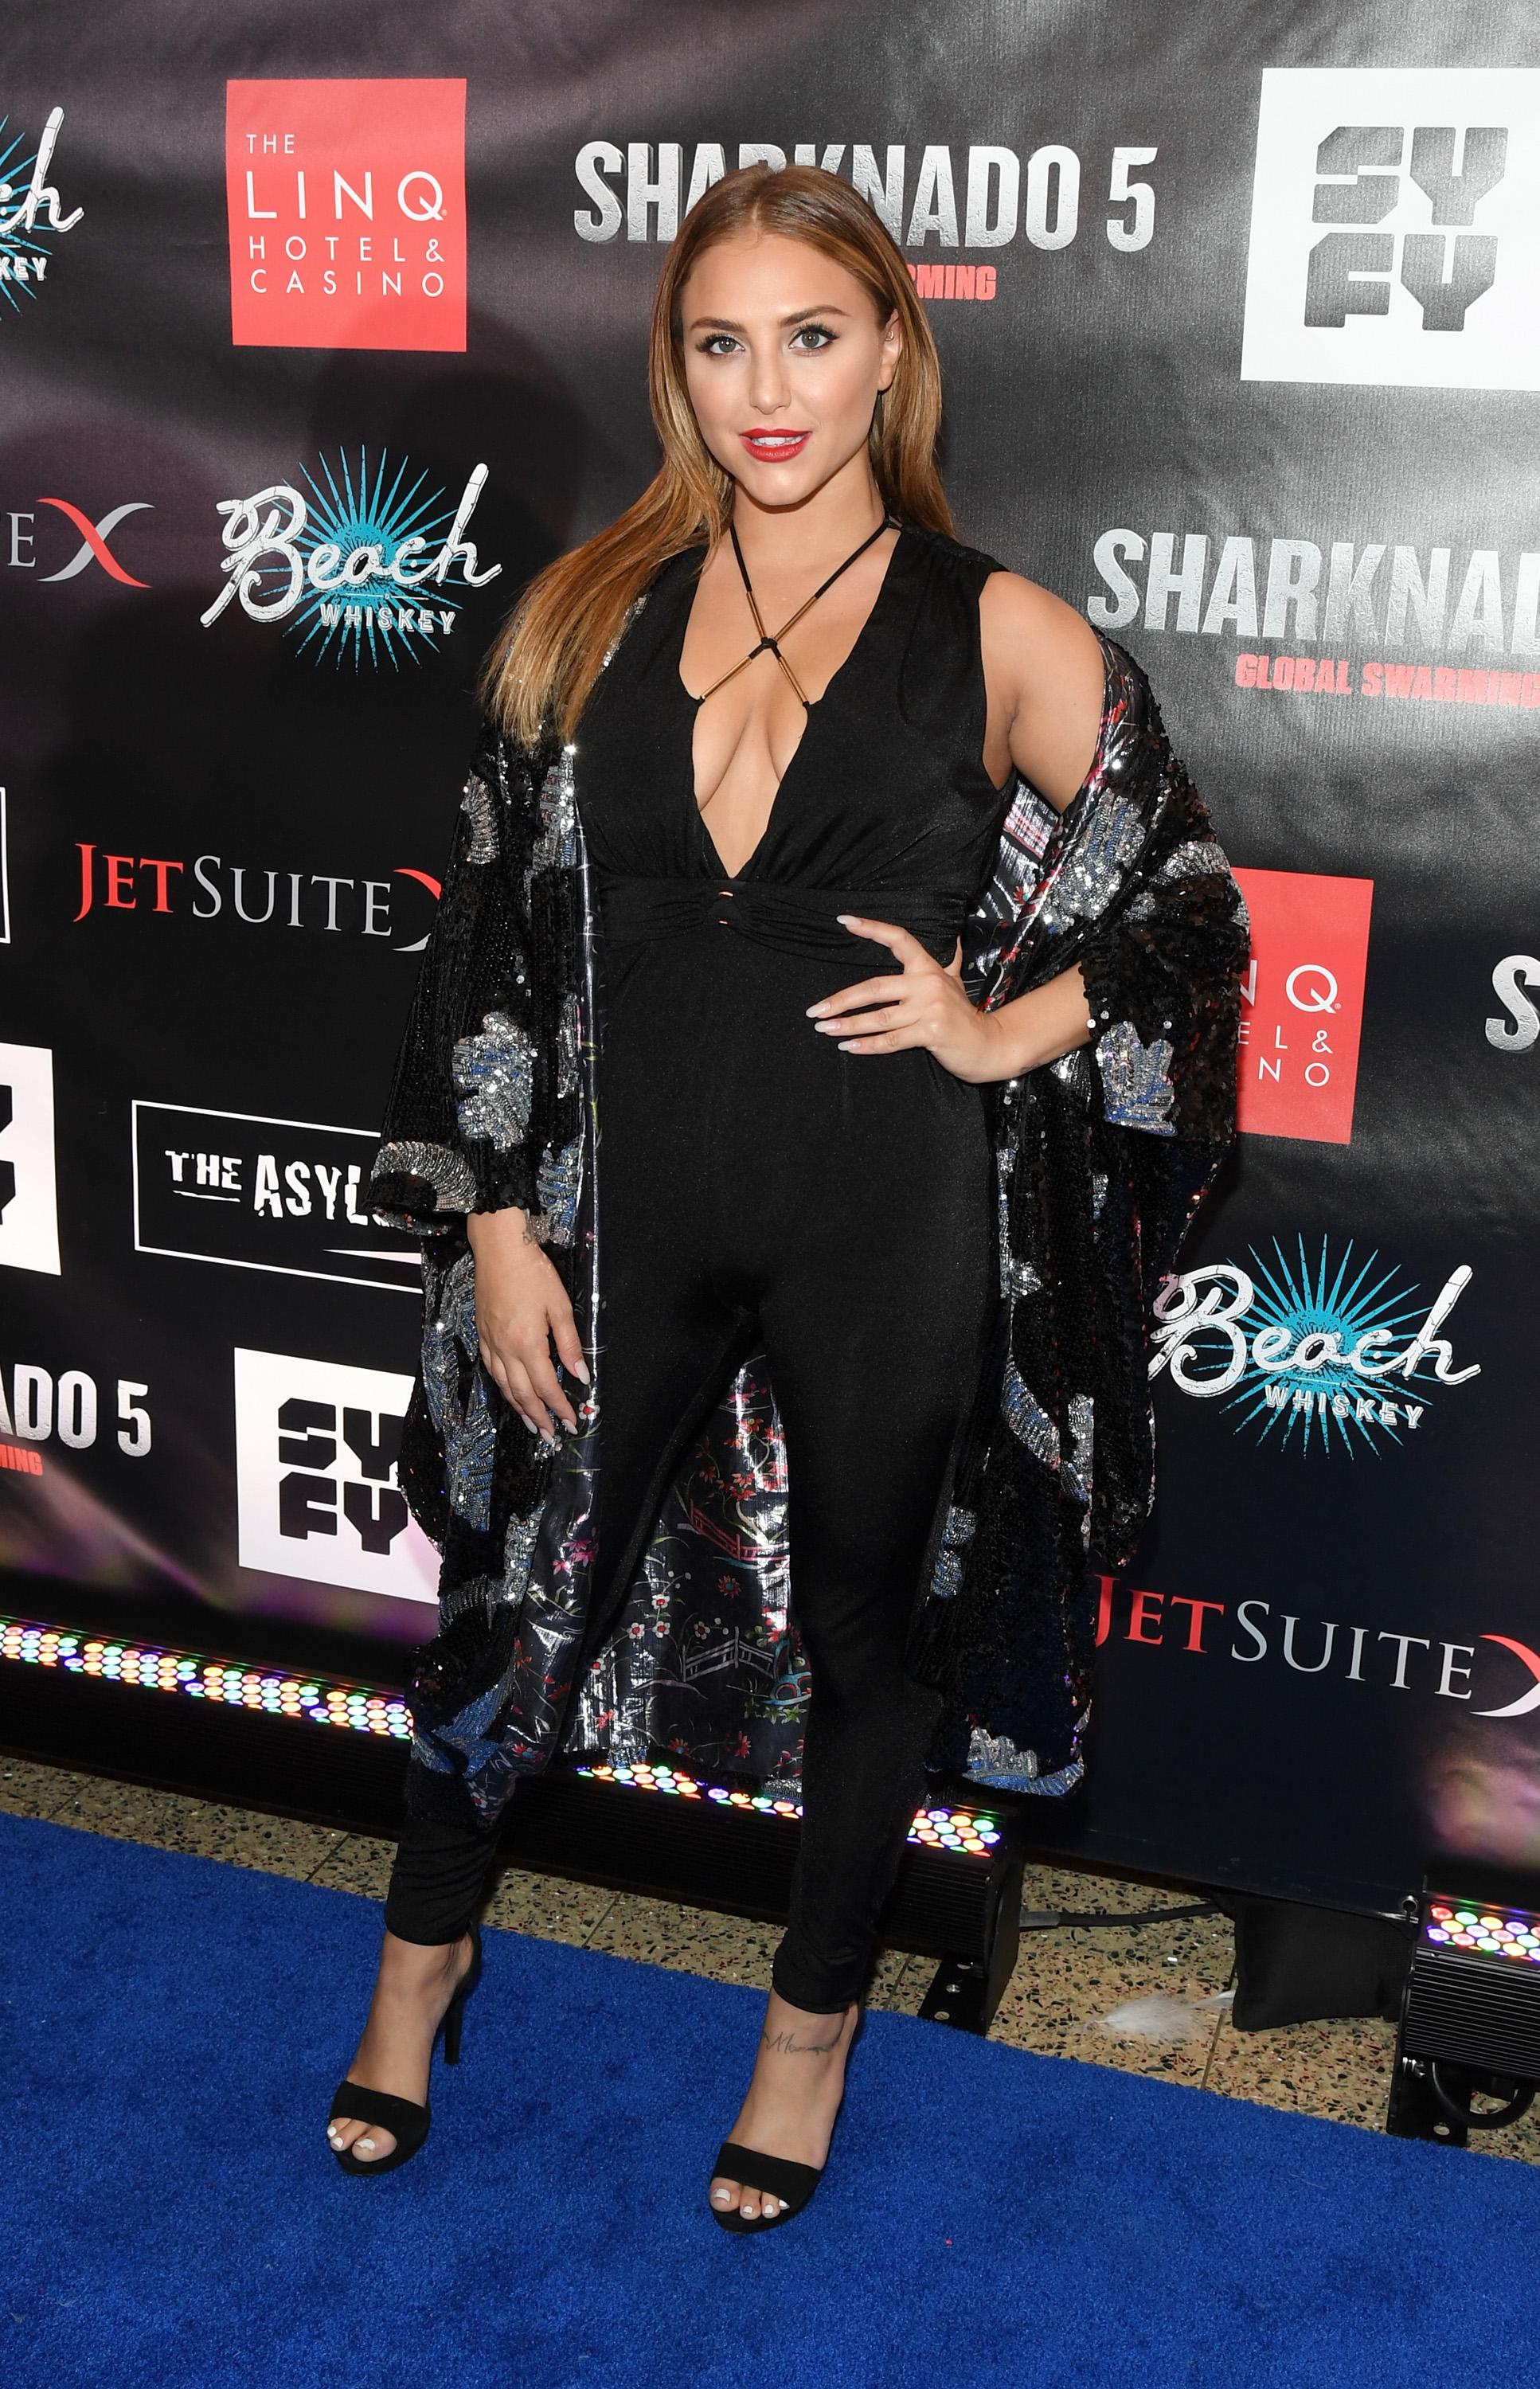 "LAS VEGAS, NV - AUGUST 06:  Actress Cassie Scerbo attends the premiere of ""Sharknado 5: Global Swarming"" at The LINQ Hotel & Casino on August 6, 2017 in Las Vegas, Nevada.  (Photo by Ethan Miller/Getty Images for Caesars Entertainment )"